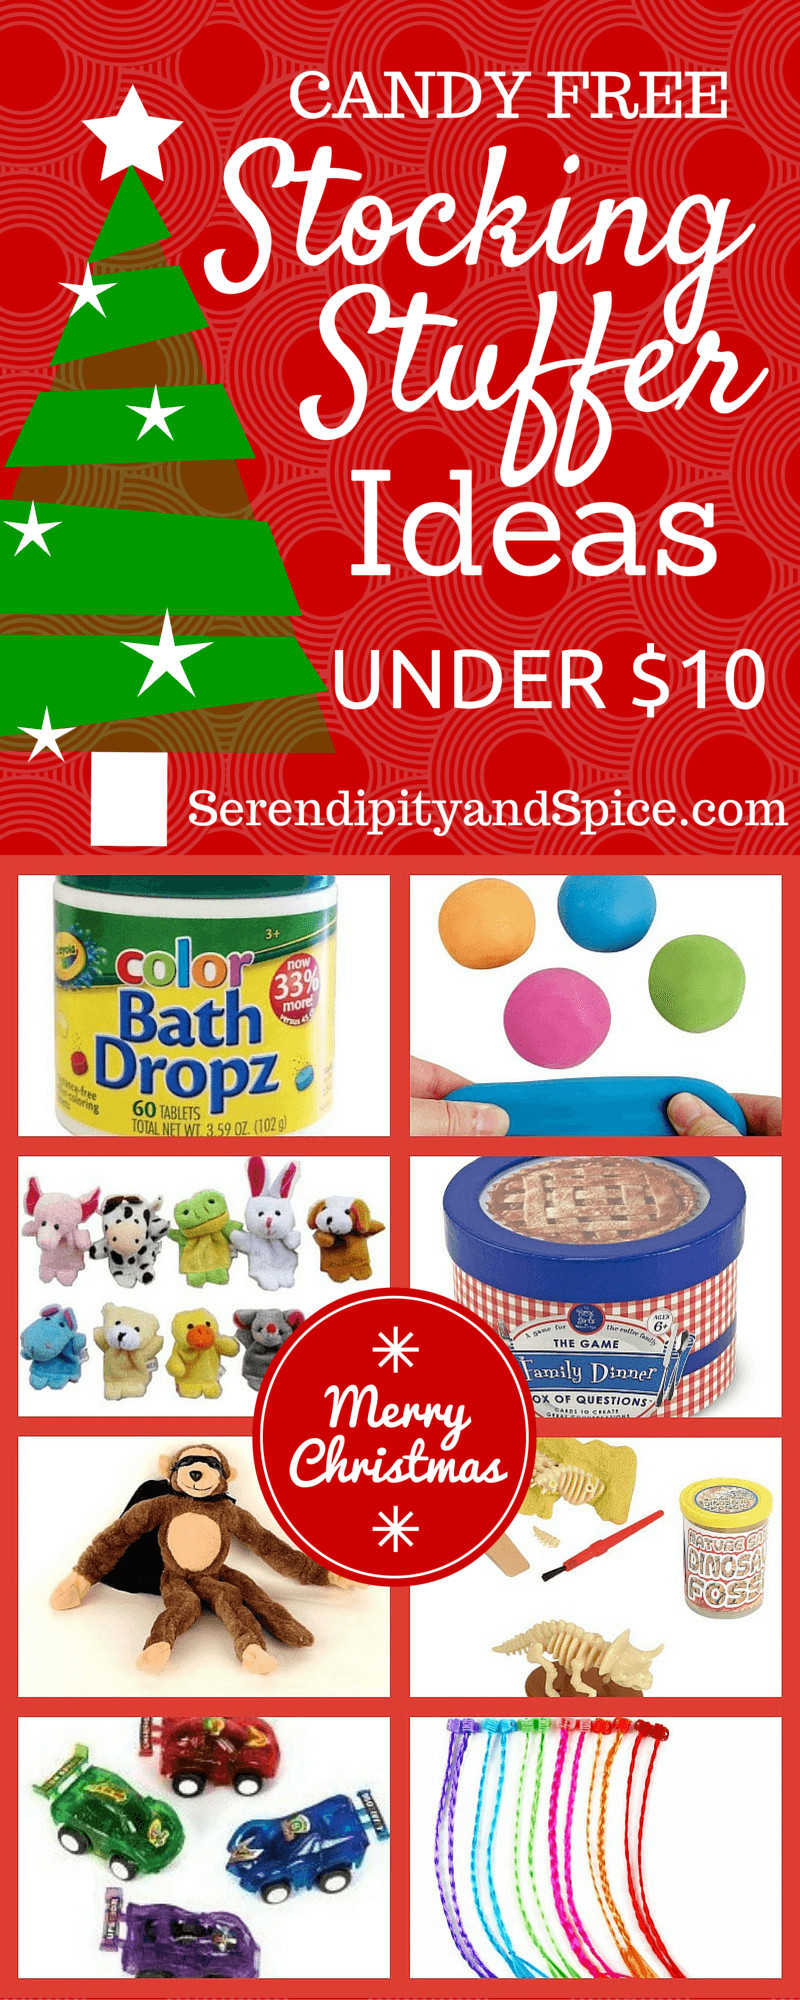 Christmas Candy Stocking Stuffers  Stocking Stuffer Ideas Other Than Candy Serendipity and